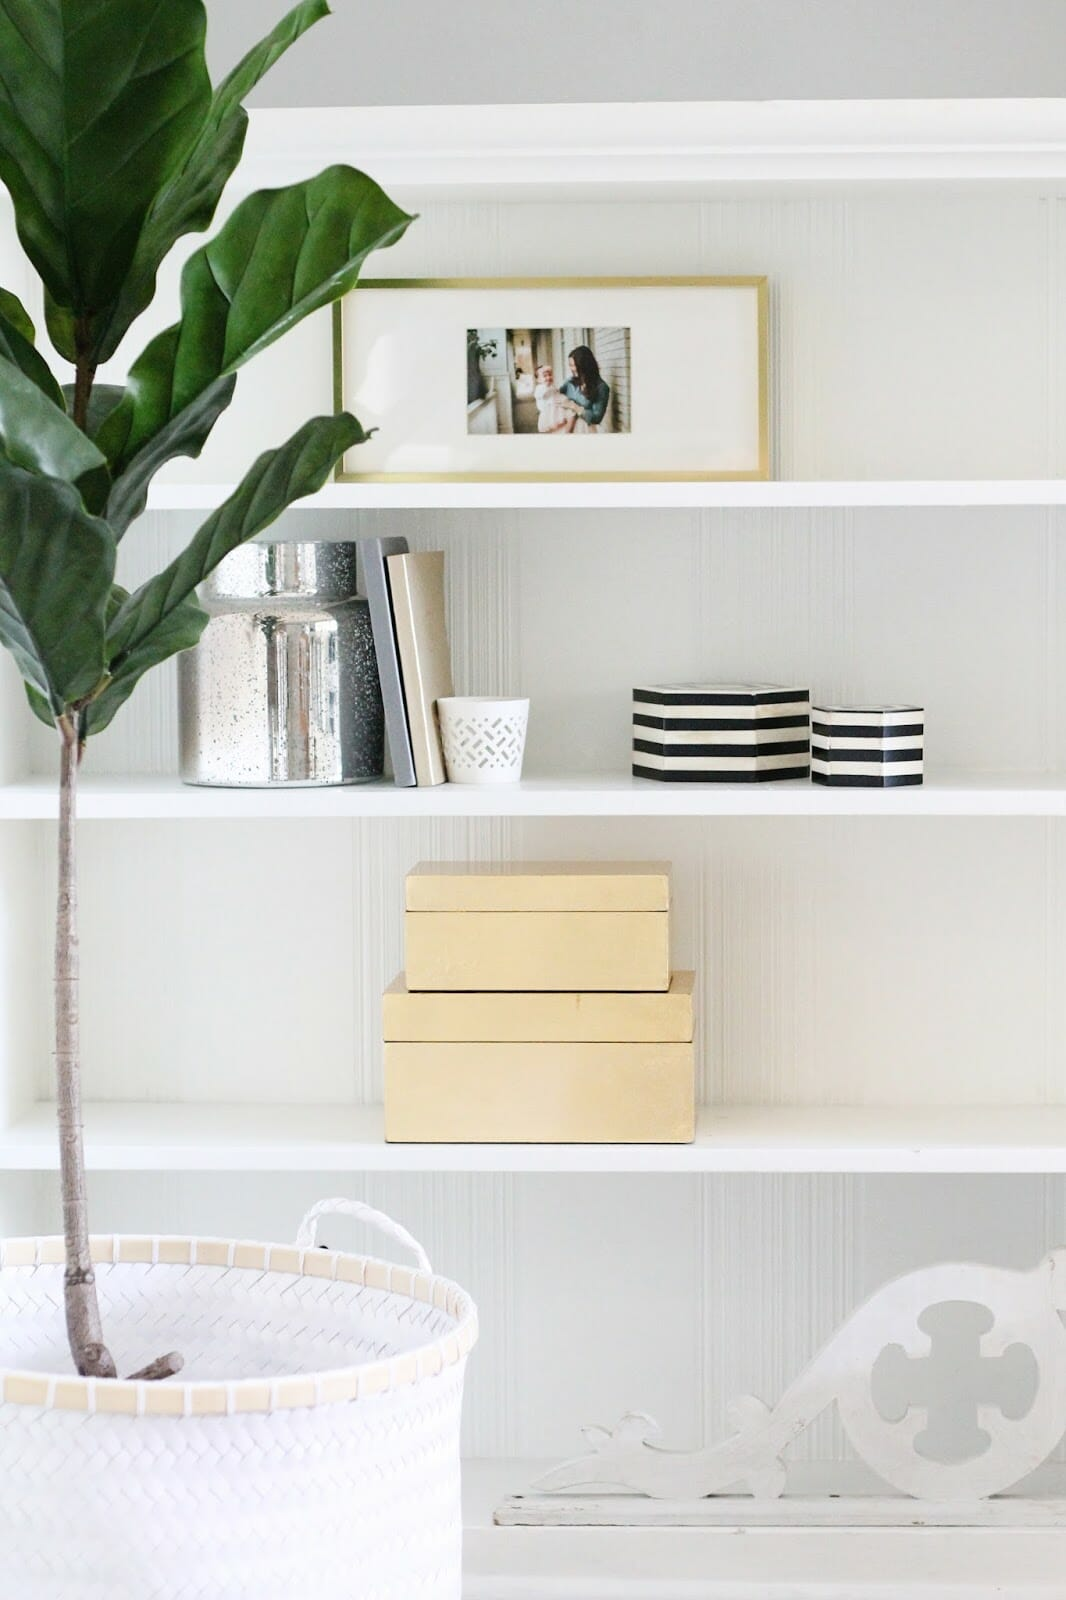 The Best Faux Fiddle Leaf Fig Trees {And Where We Got Ours}